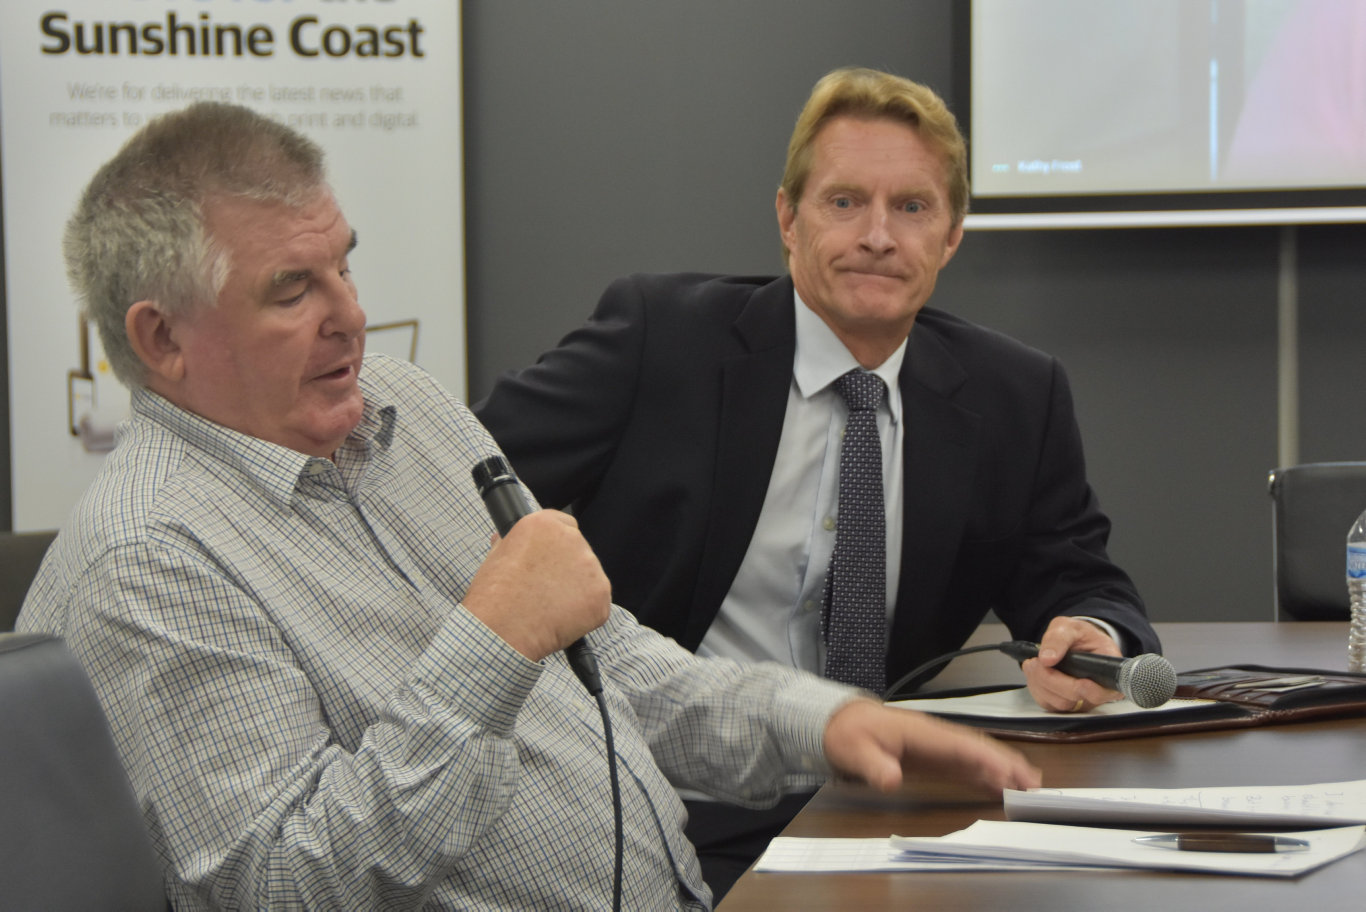 Mayoral candidates Michael Burgess and Chris Thompson speak at a Sunshine Coast Daily election forum.